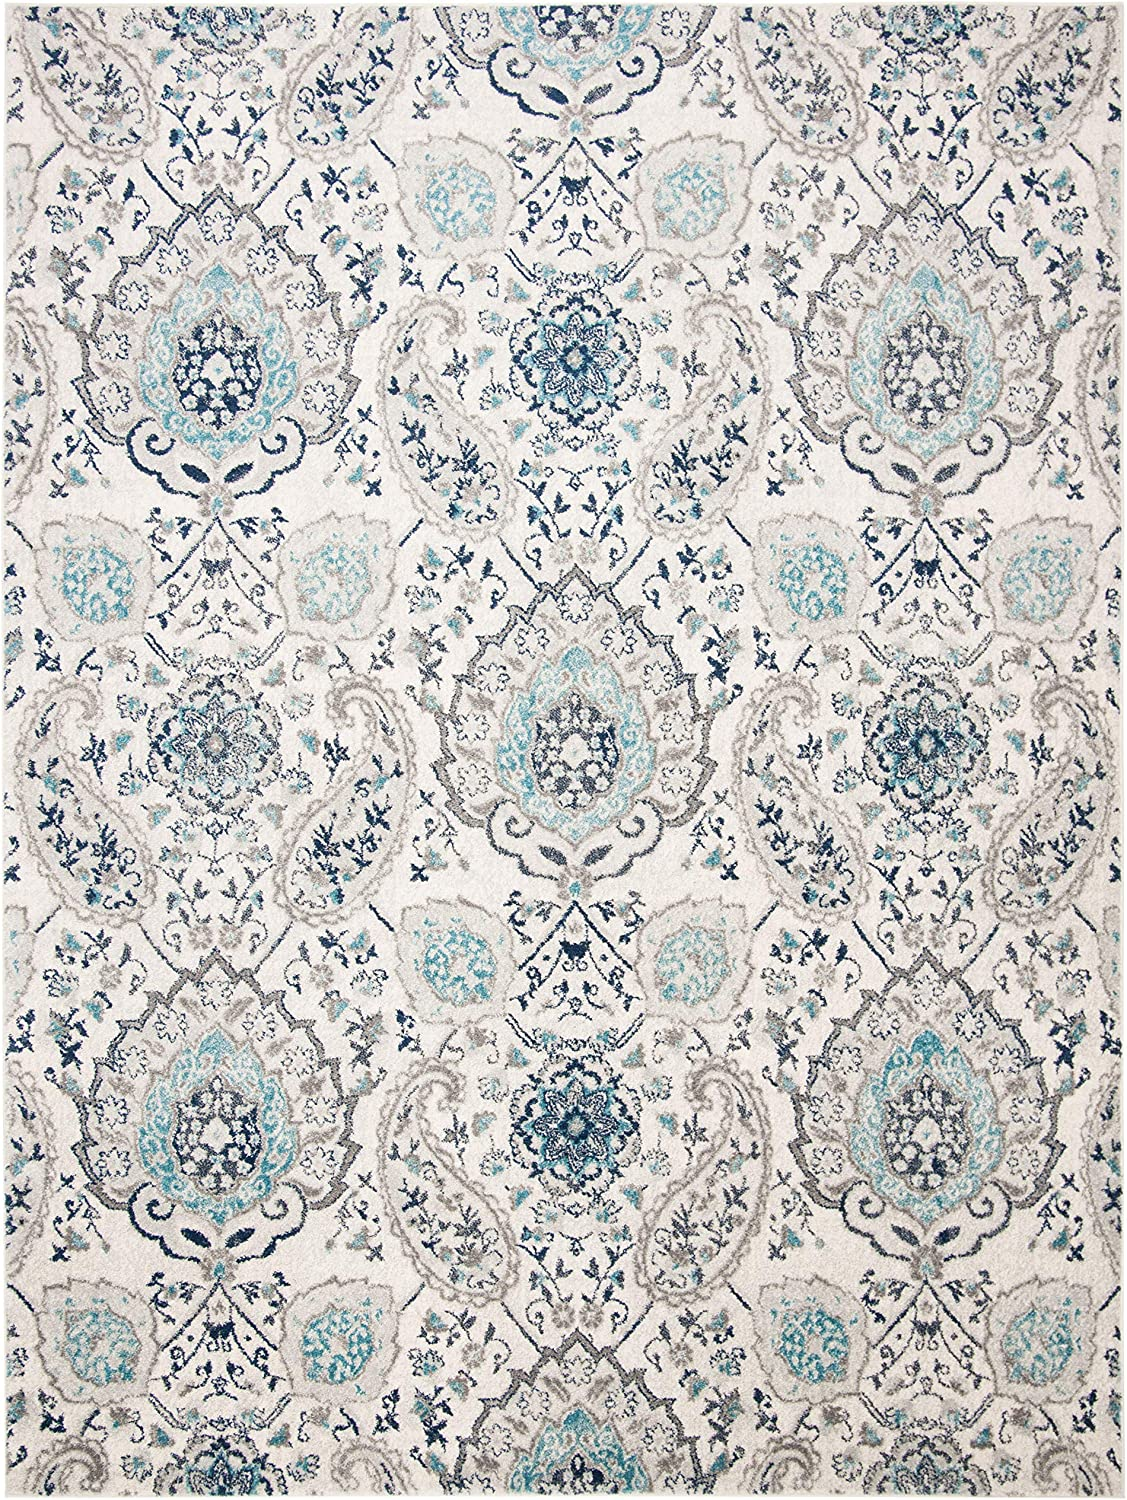 Bohemian Chic Glam Paisley Area Rug